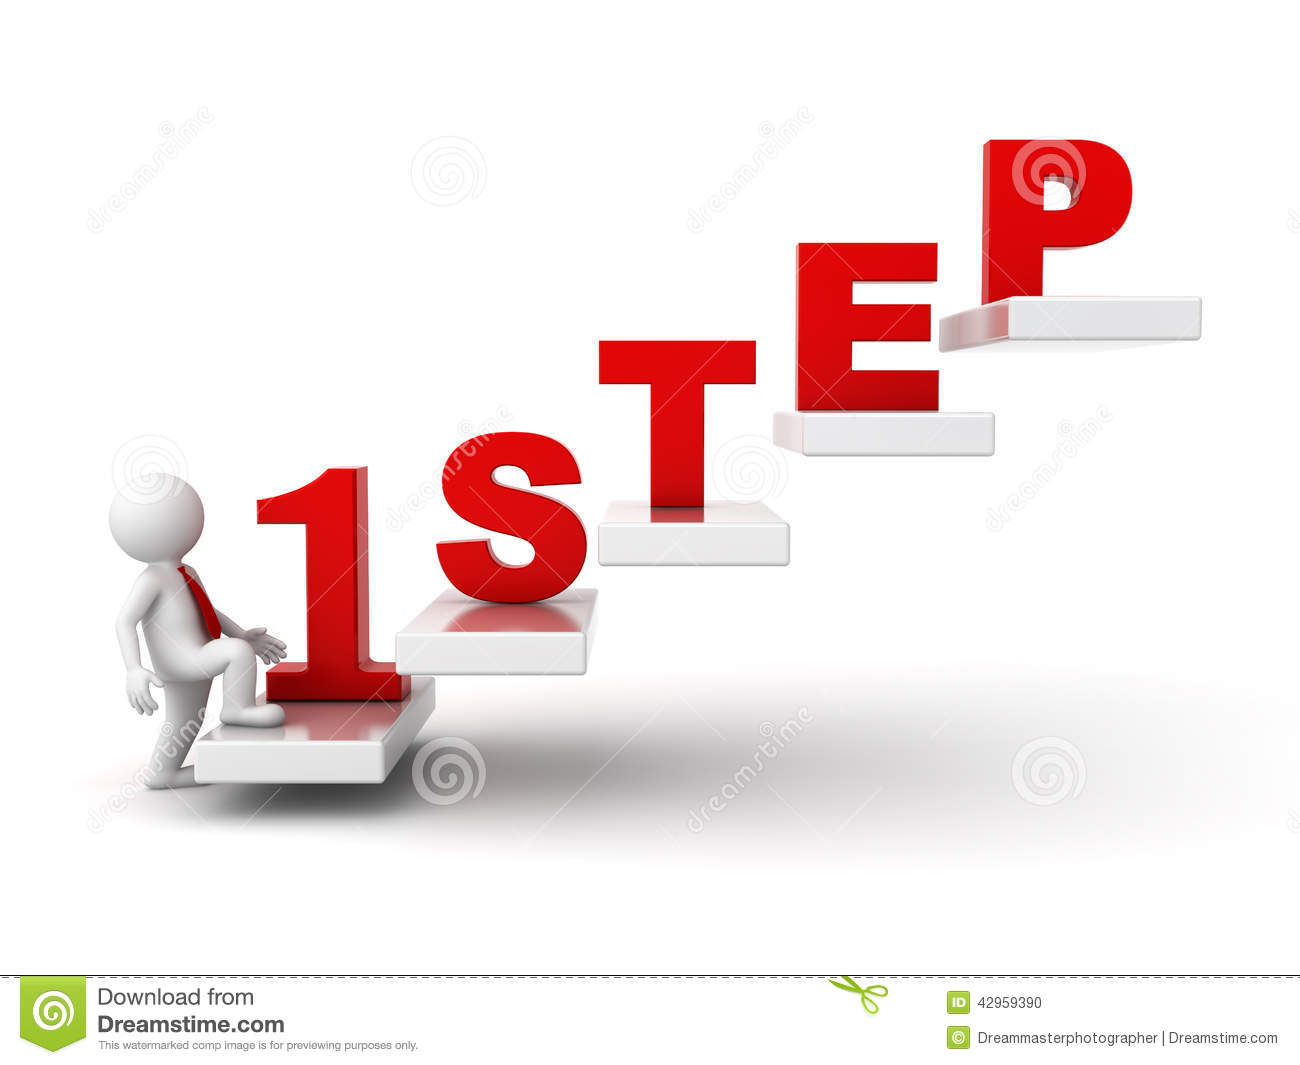 5 years sucess clipart jpg royalty free download Steps to success clipart 5 » Clipart Station jpg royalty free download